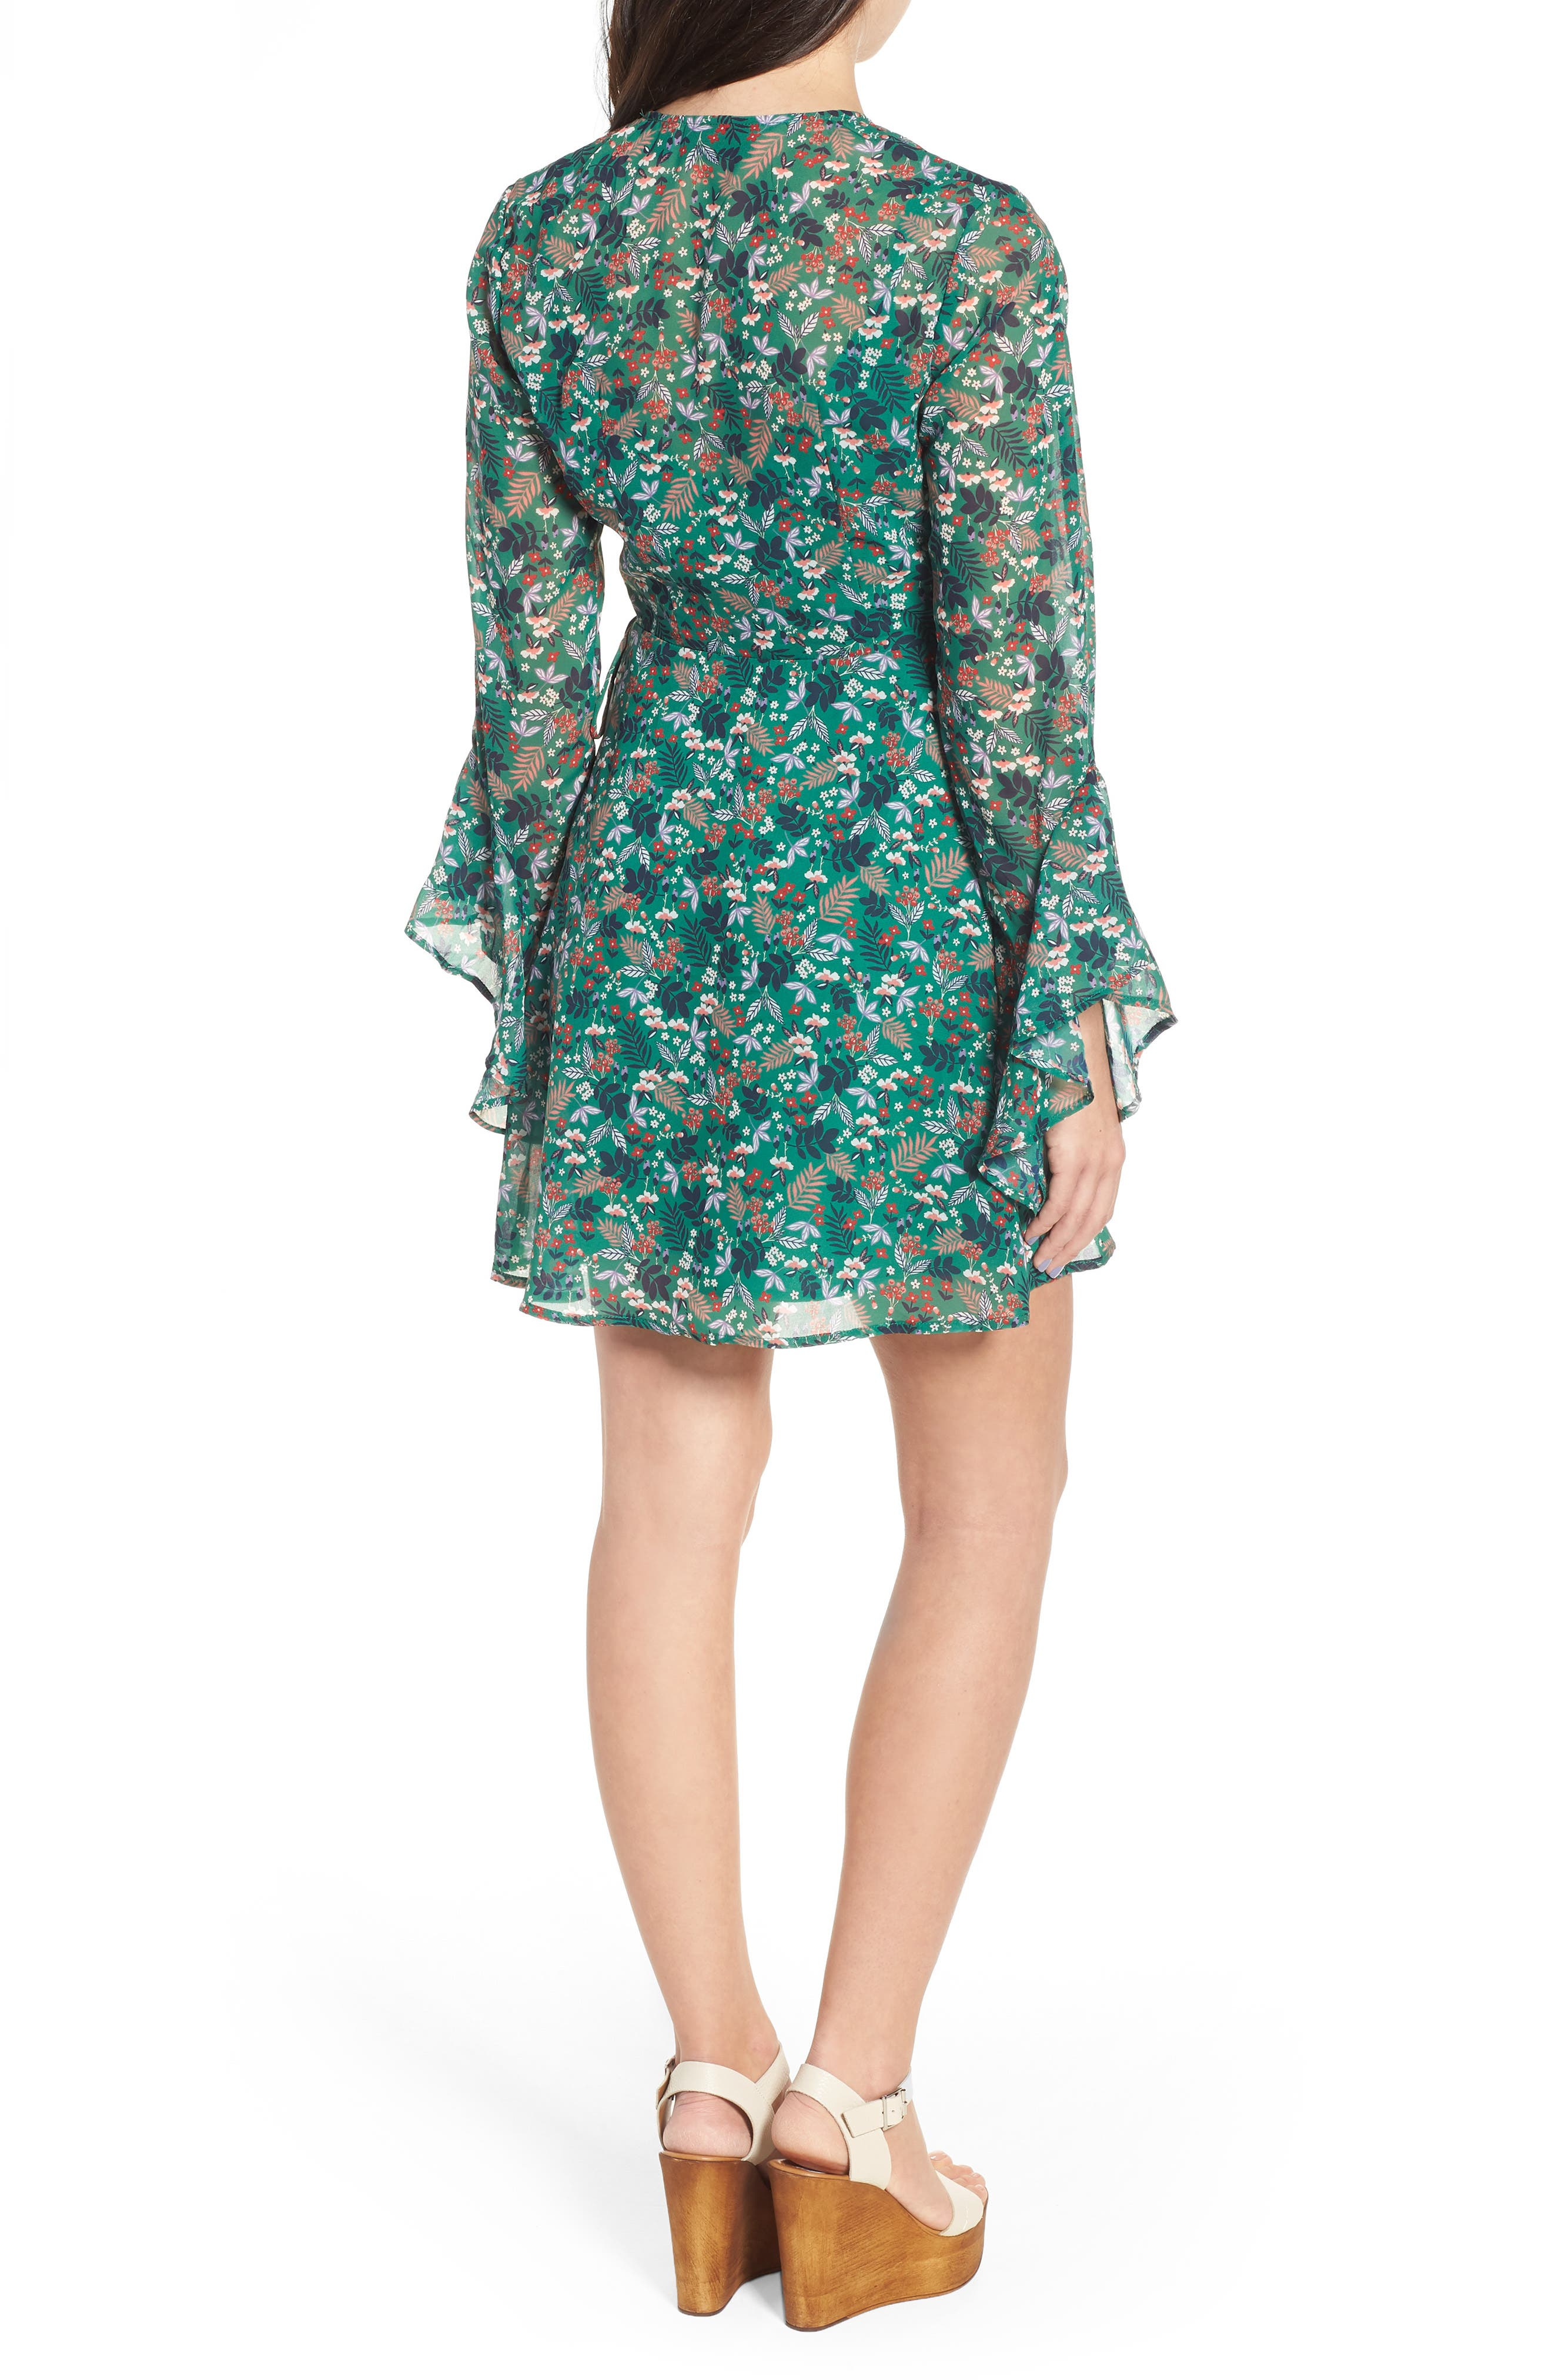 Viridian Floral Wrap Dress,                             Alternate thumbnail 2, color,                             305